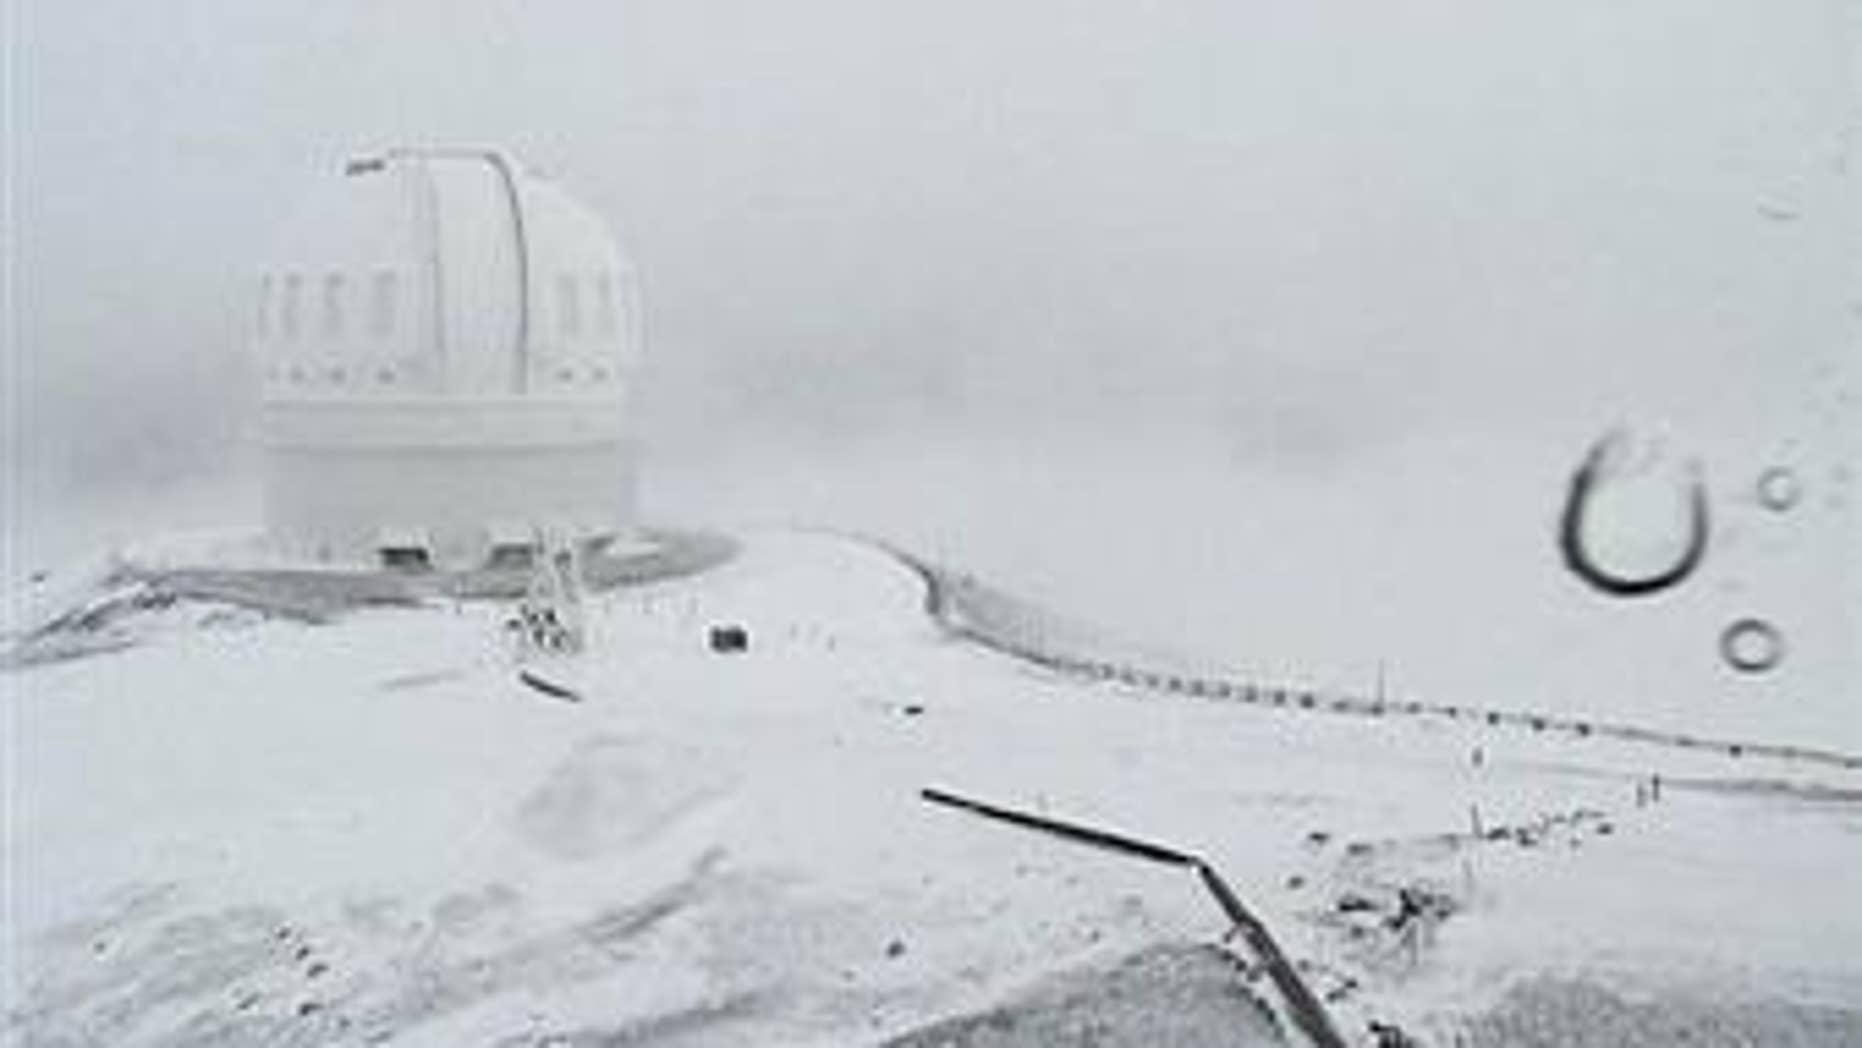 This webcam image shows the CFHT telescope on the summit of Mauna Kea on Hawaii's Big Island covered in snow on Dec. 1, 2016.